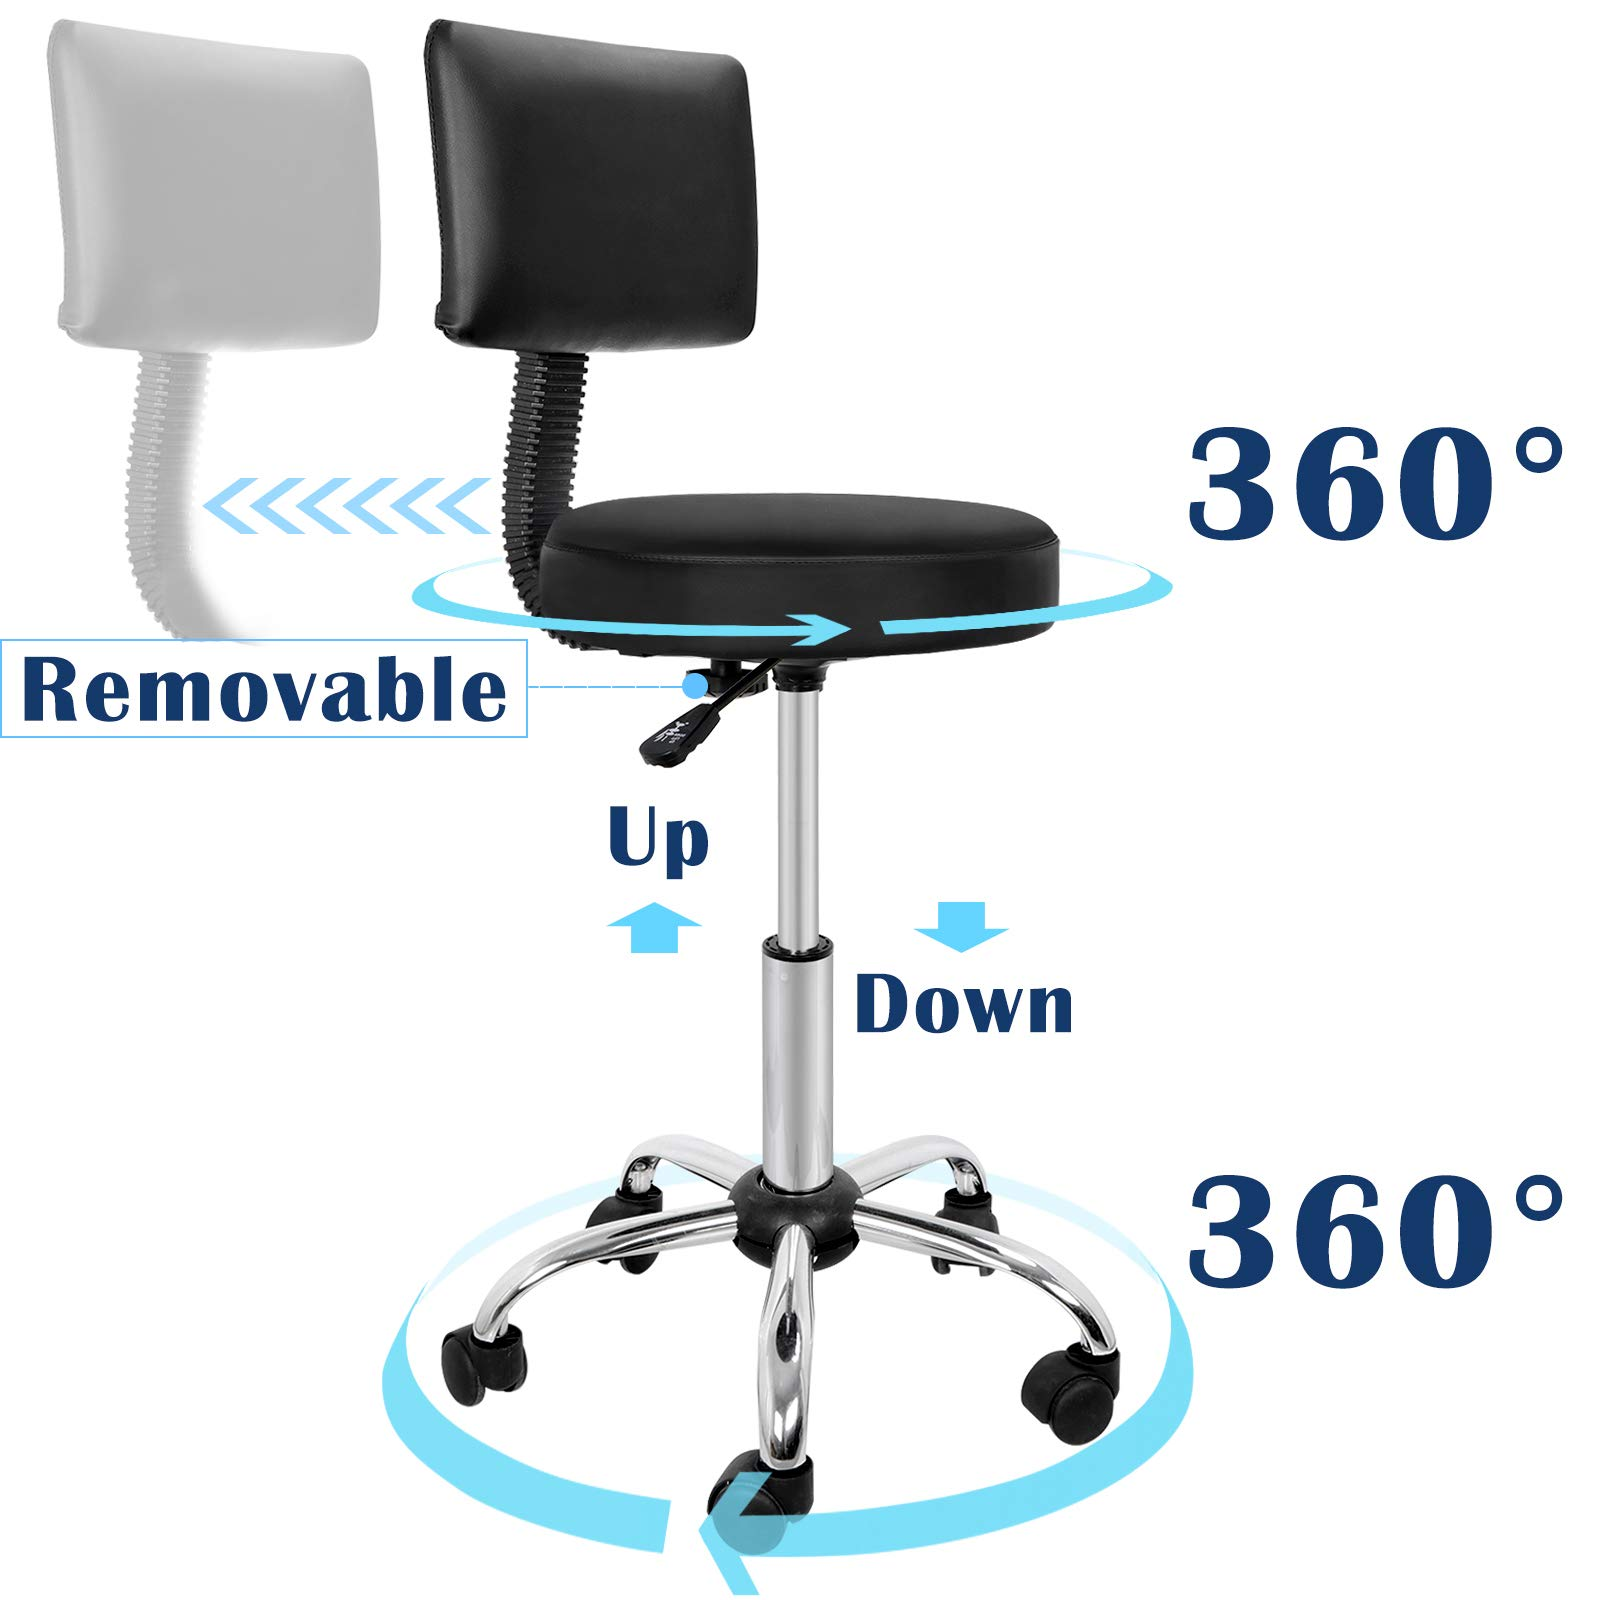 Adjustable Hydraulic Rolling Swivel Salon Stool Chair Tattoo Massage Facial Spa Stool Chair With Back (PU Leather Cushion)